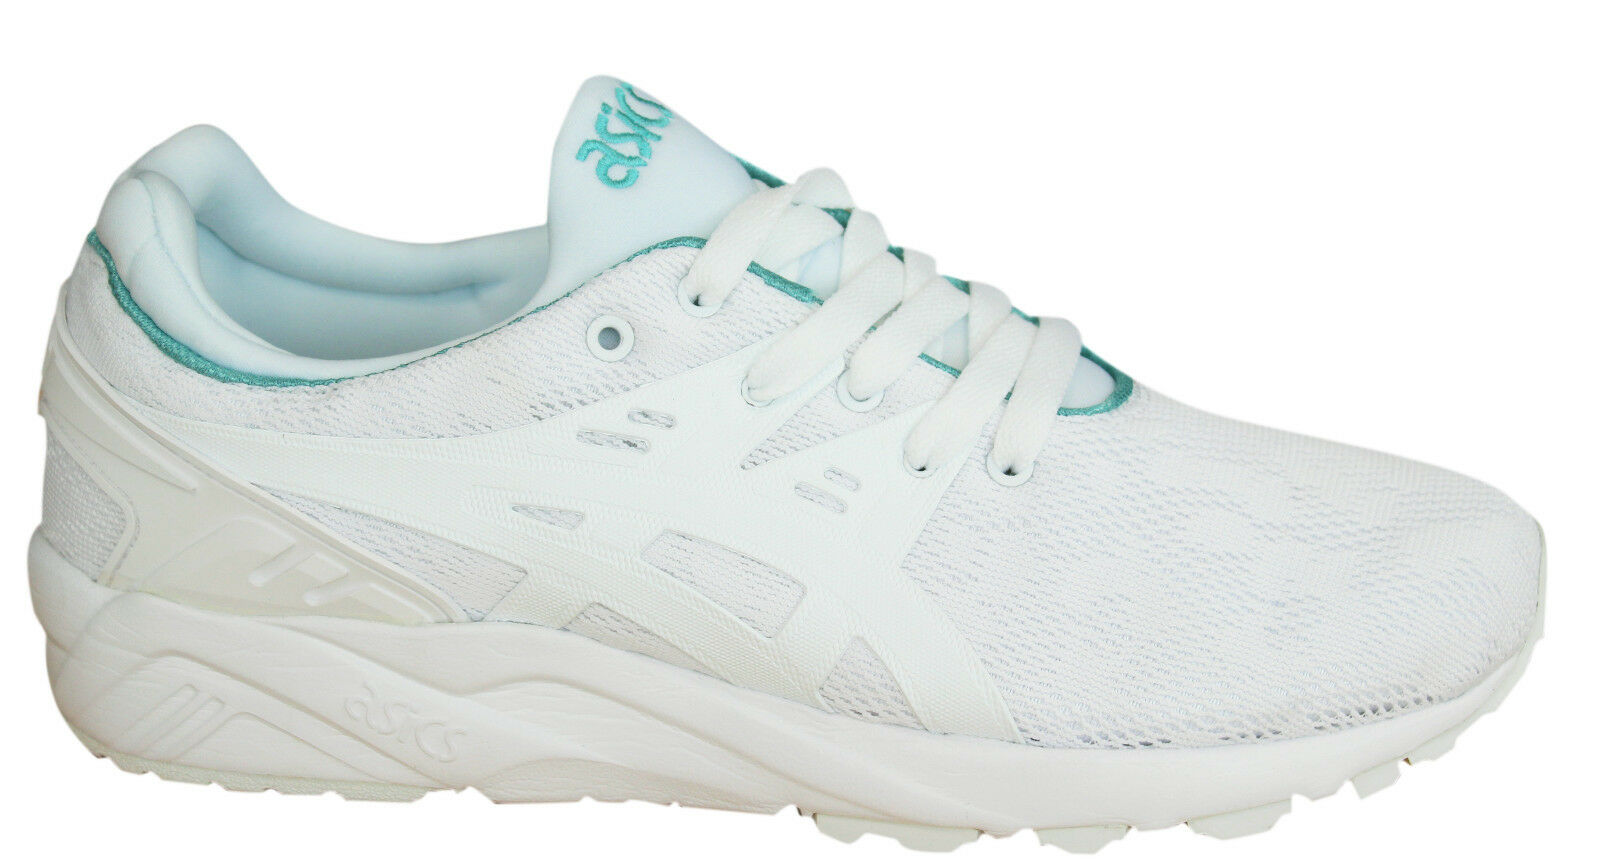 Asics Gel-Kayano Trainers Up Evo Womens Shoes Lace Up Trainers Textile White H7Q6N 0101 M4 6ebe7c